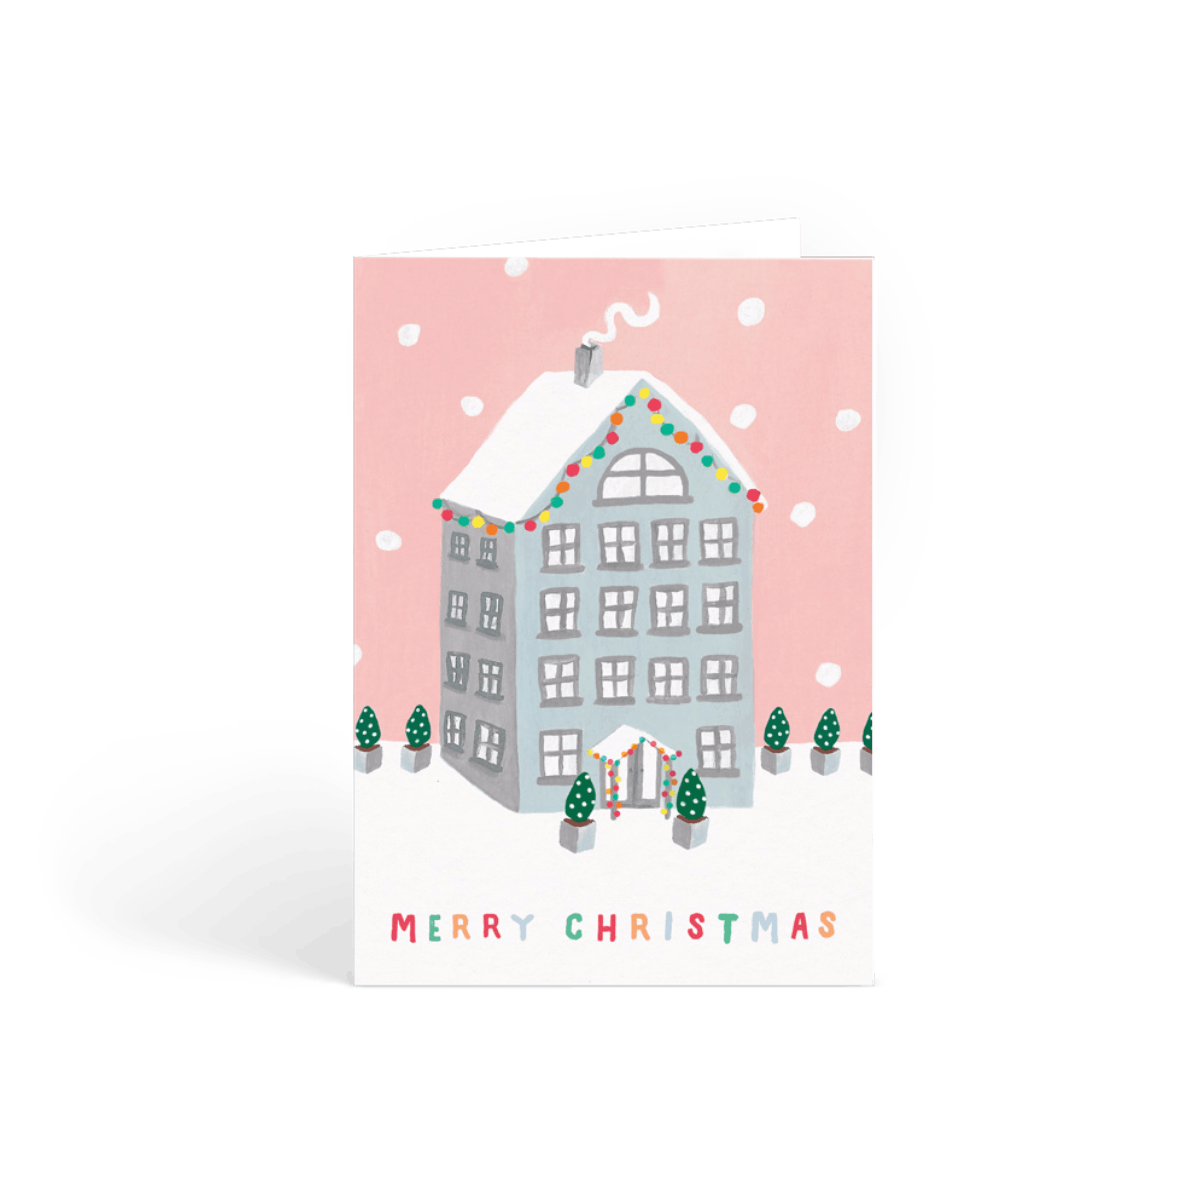 Https%3a%2f%2fwww.papier.com%2fproduct image%2f30170%2f2%2fchristmas house 7609 front 1509027611.png?ixlib=rb 1.1